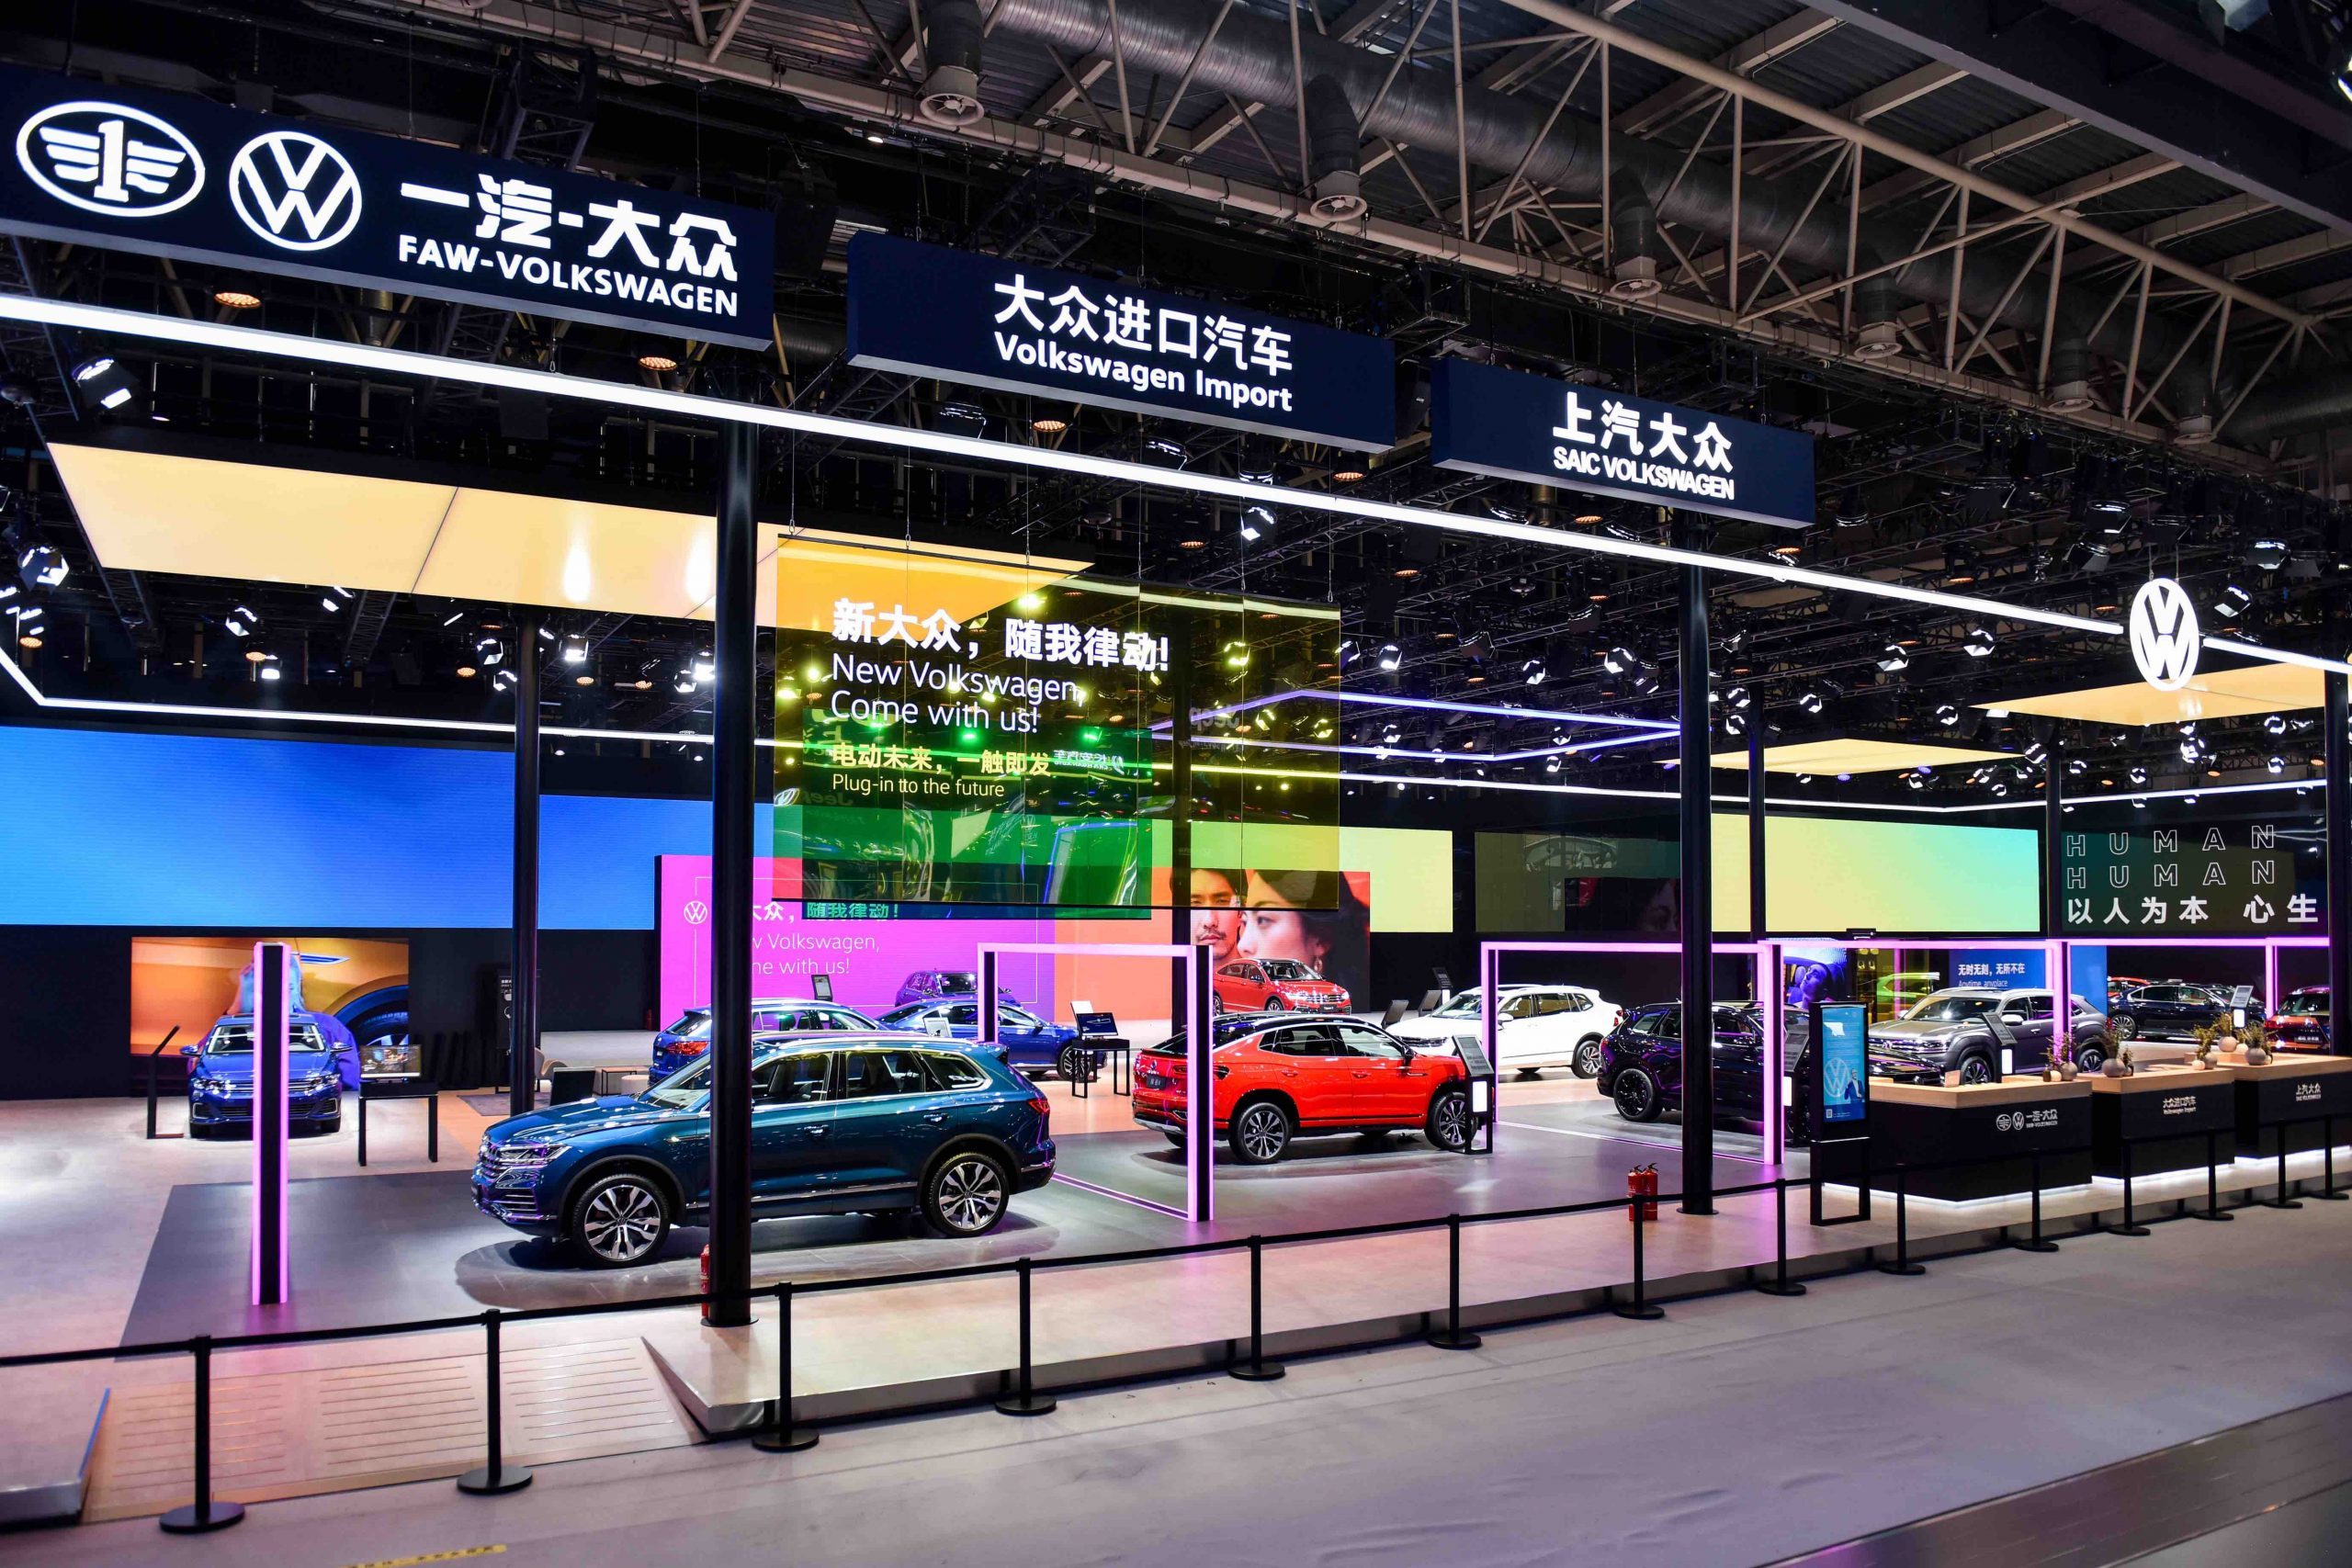 "At this year's Auto Beijing, Volkswagen once again relies on the knowhow of Vok Dams China. The experts for events and live-marketing are responsible for Volkswagen's brand production at Auto China for the sixth time this year. The ten-day Auto China, which is held annually, alternately in Beijing and Shanghai, is one of the world's leading fairs in the automotive sector. Vok Dams was commissioned with the development of the brand communication within the framework of an integrated media and performance staging as well as the public day show management. The result was a dynamic, urban brand experience - lively, modern and precisely tailored to the target group of Volkswagen. The powerful and clear graphic and show design on the 2,000 square meter exhibition stand underlined the brand message of the Volkswagen, which last year repositioned itself globally with ""New Volkswagen""."